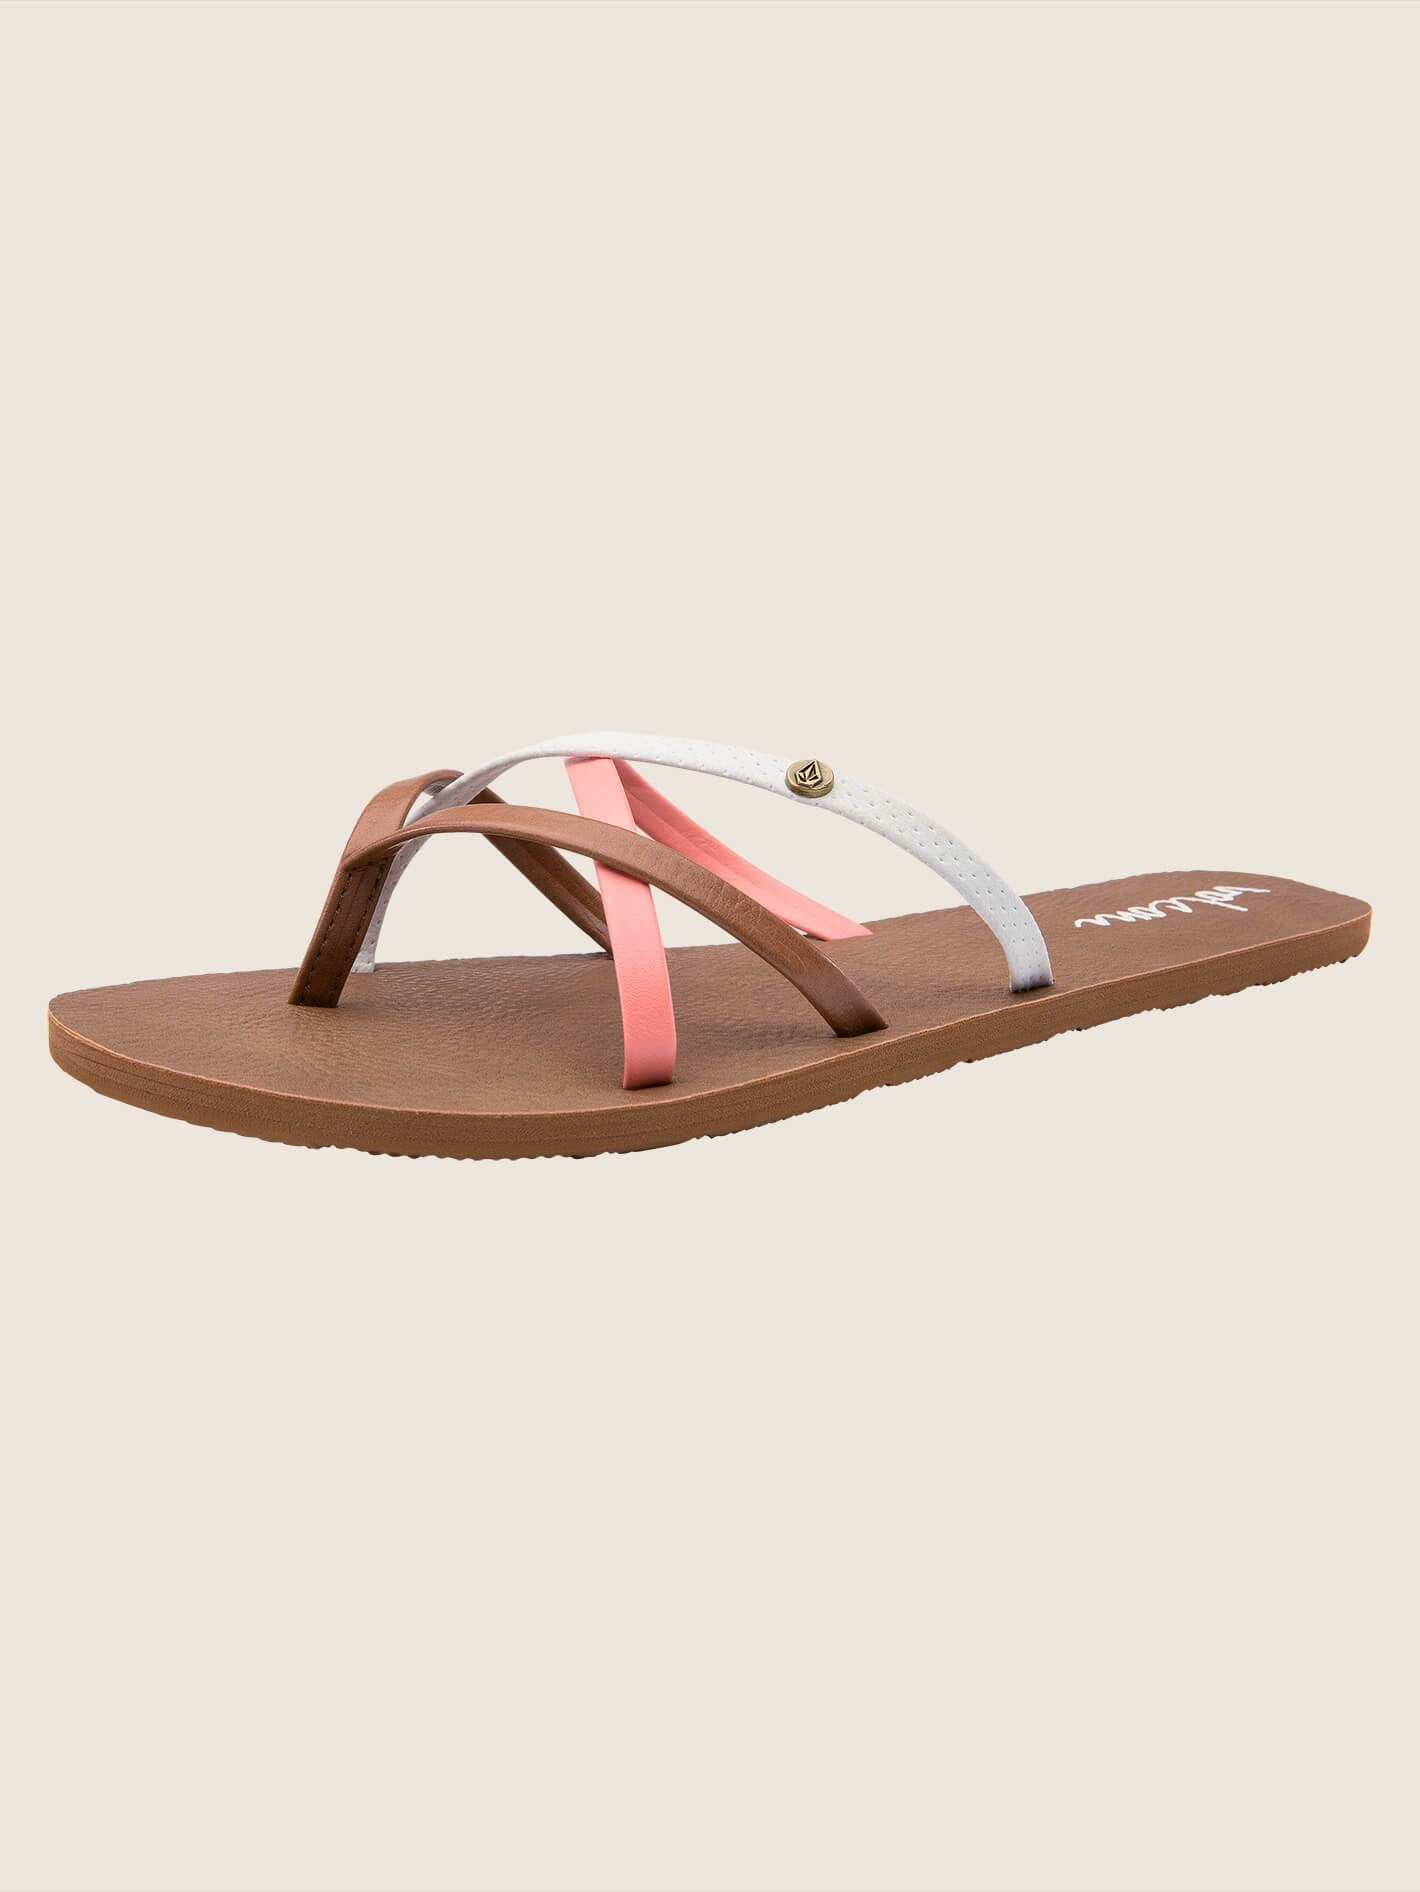 db4ad86869a New School Sandals - Coral